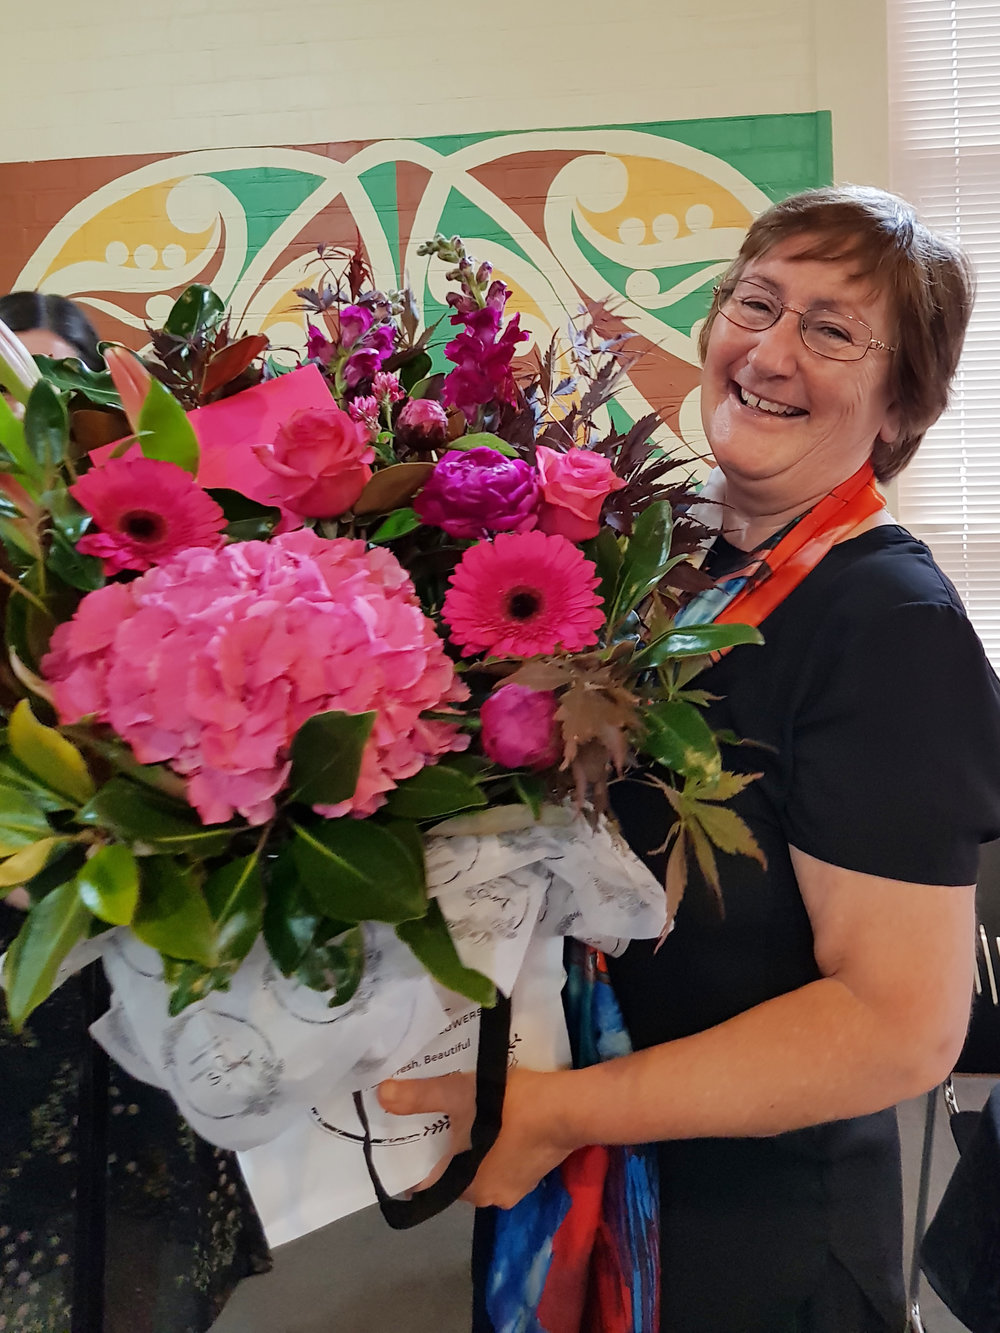 Anne became a life member of hamilton ywca in November